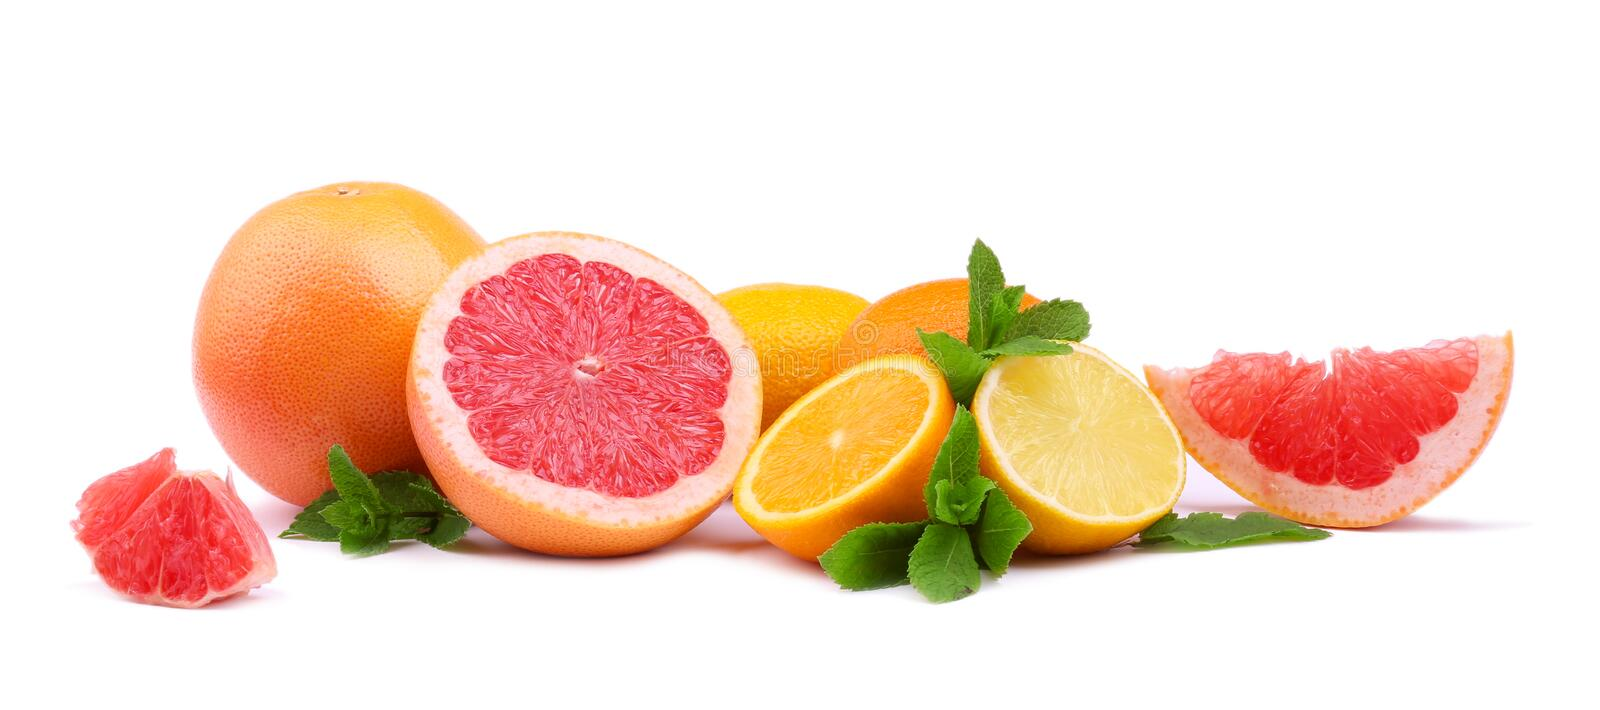 Several kinds of multi-colorful, whole and cut citrus fruits isolated on white background. Organic lemons, grapefruits and oranges. Perfect, ripe, juicy, fresh stock photo